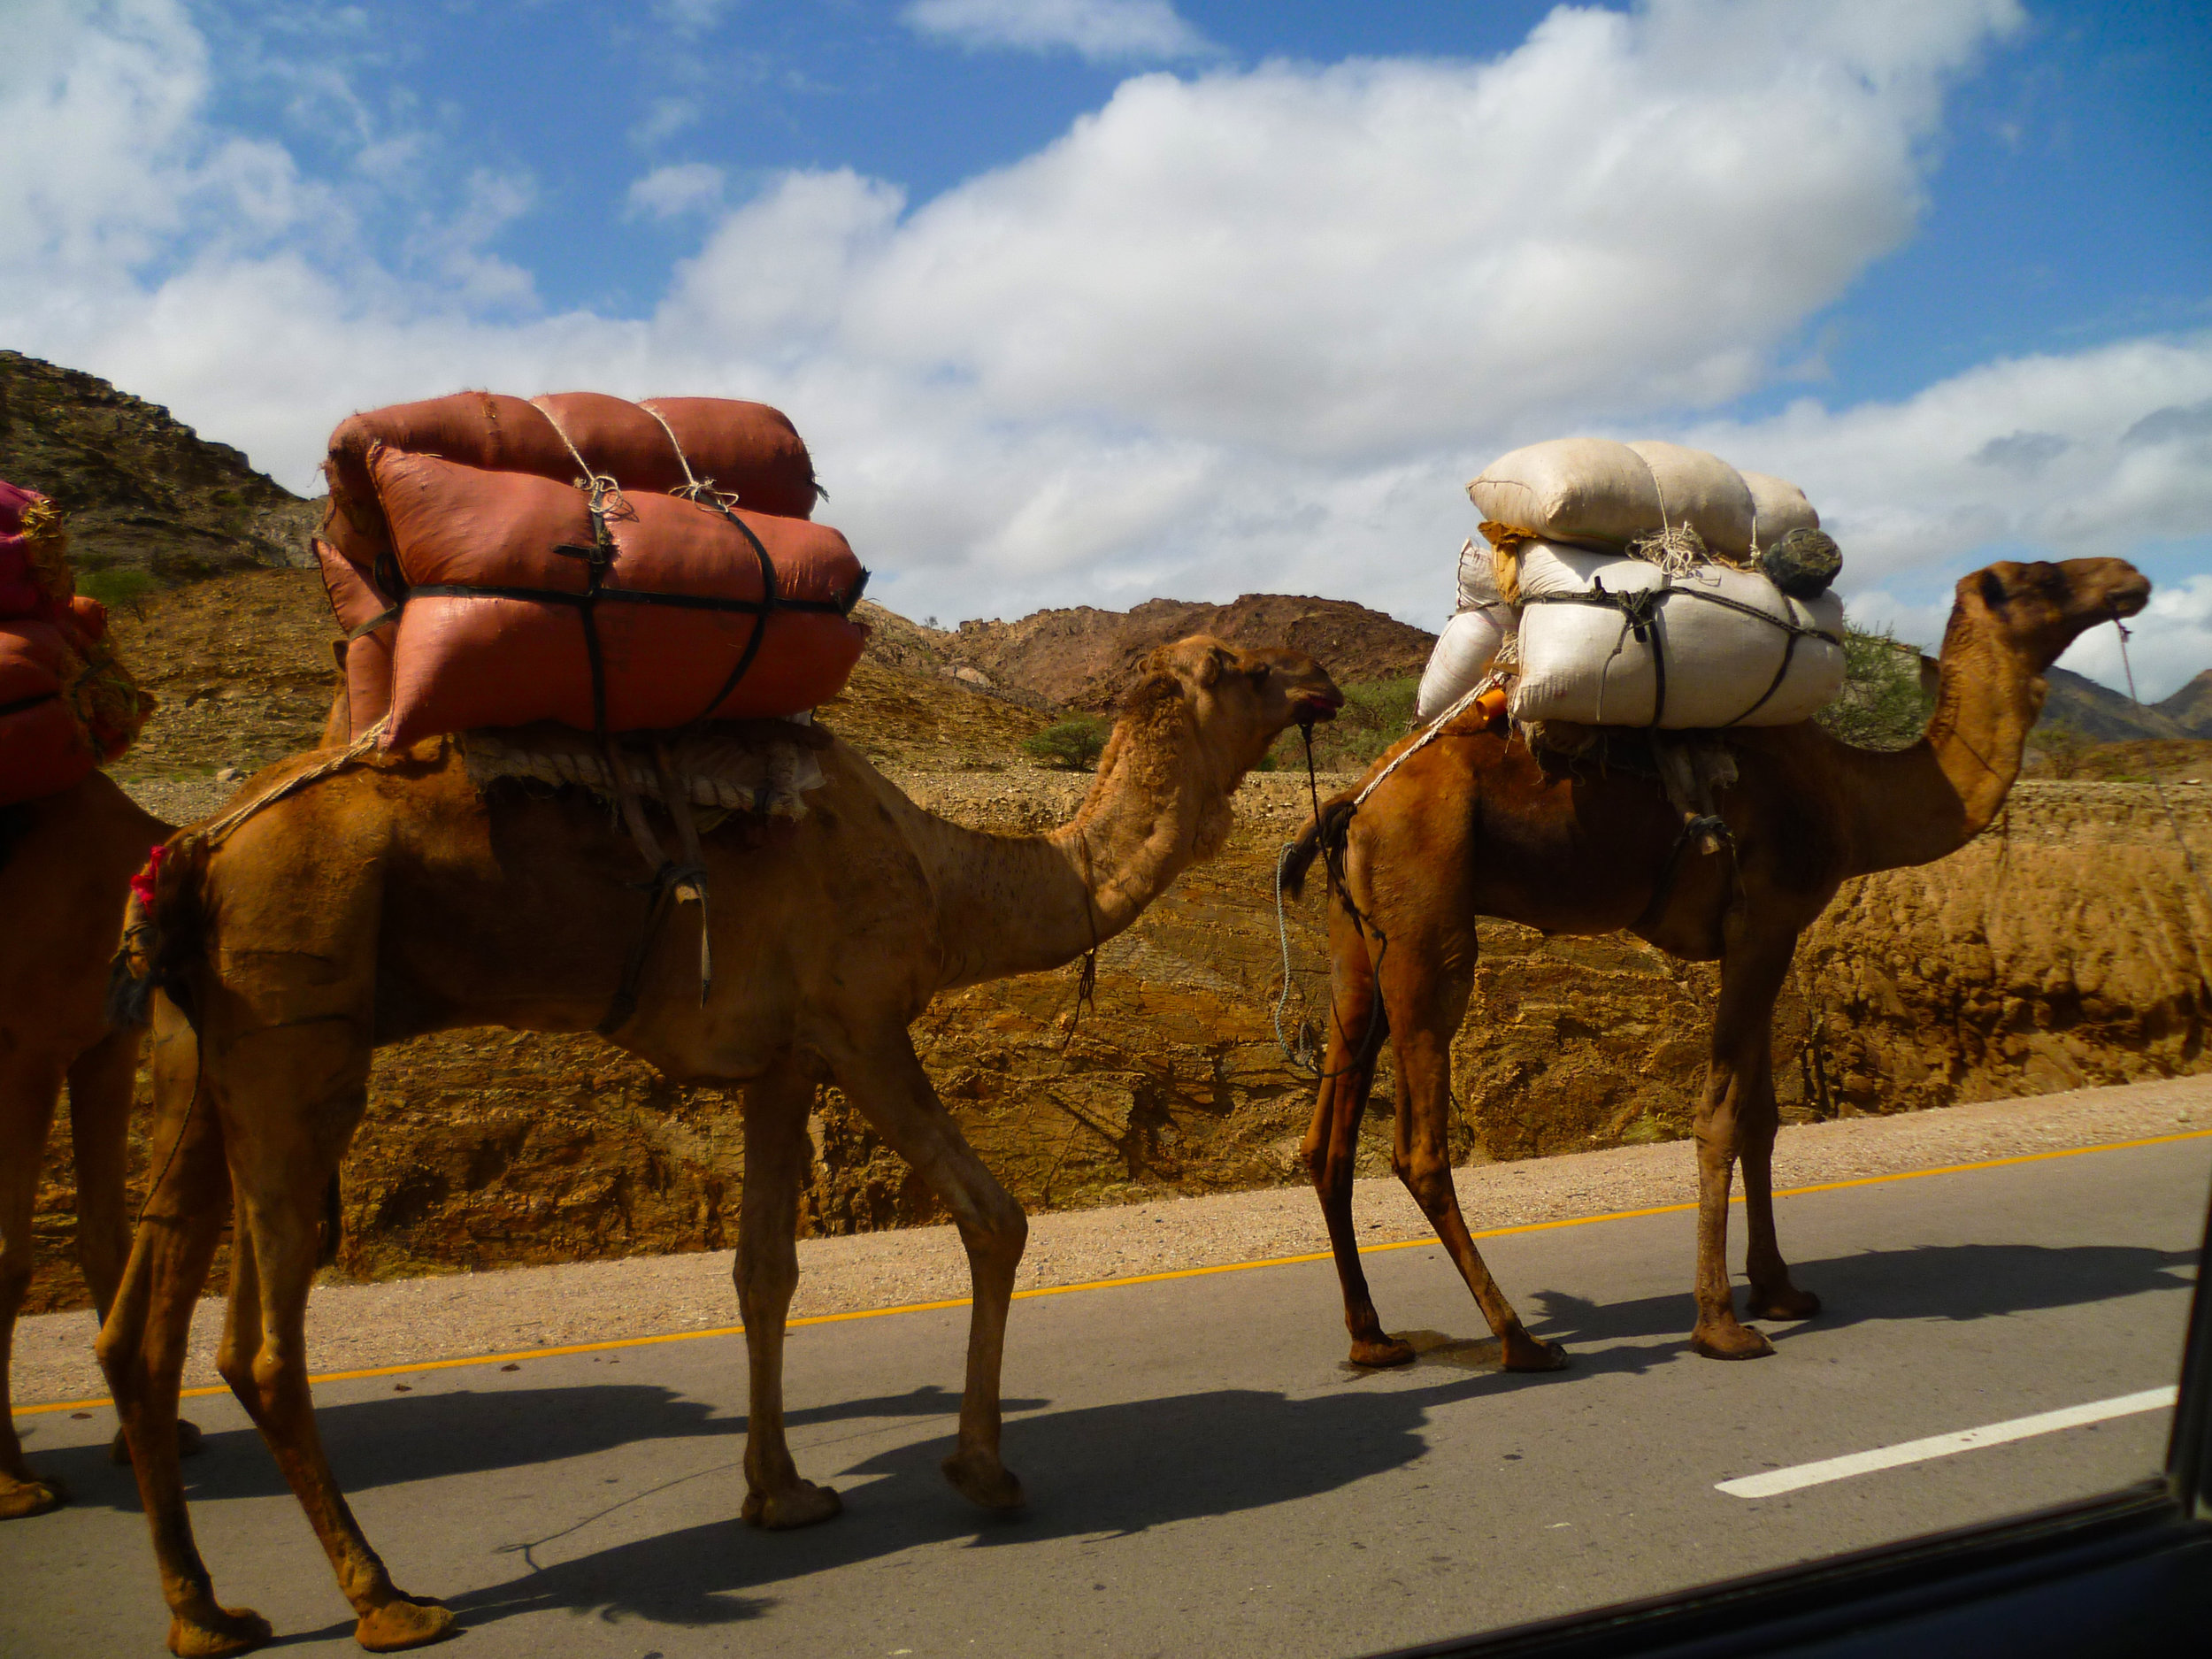 Window camels as we continue to travel north...